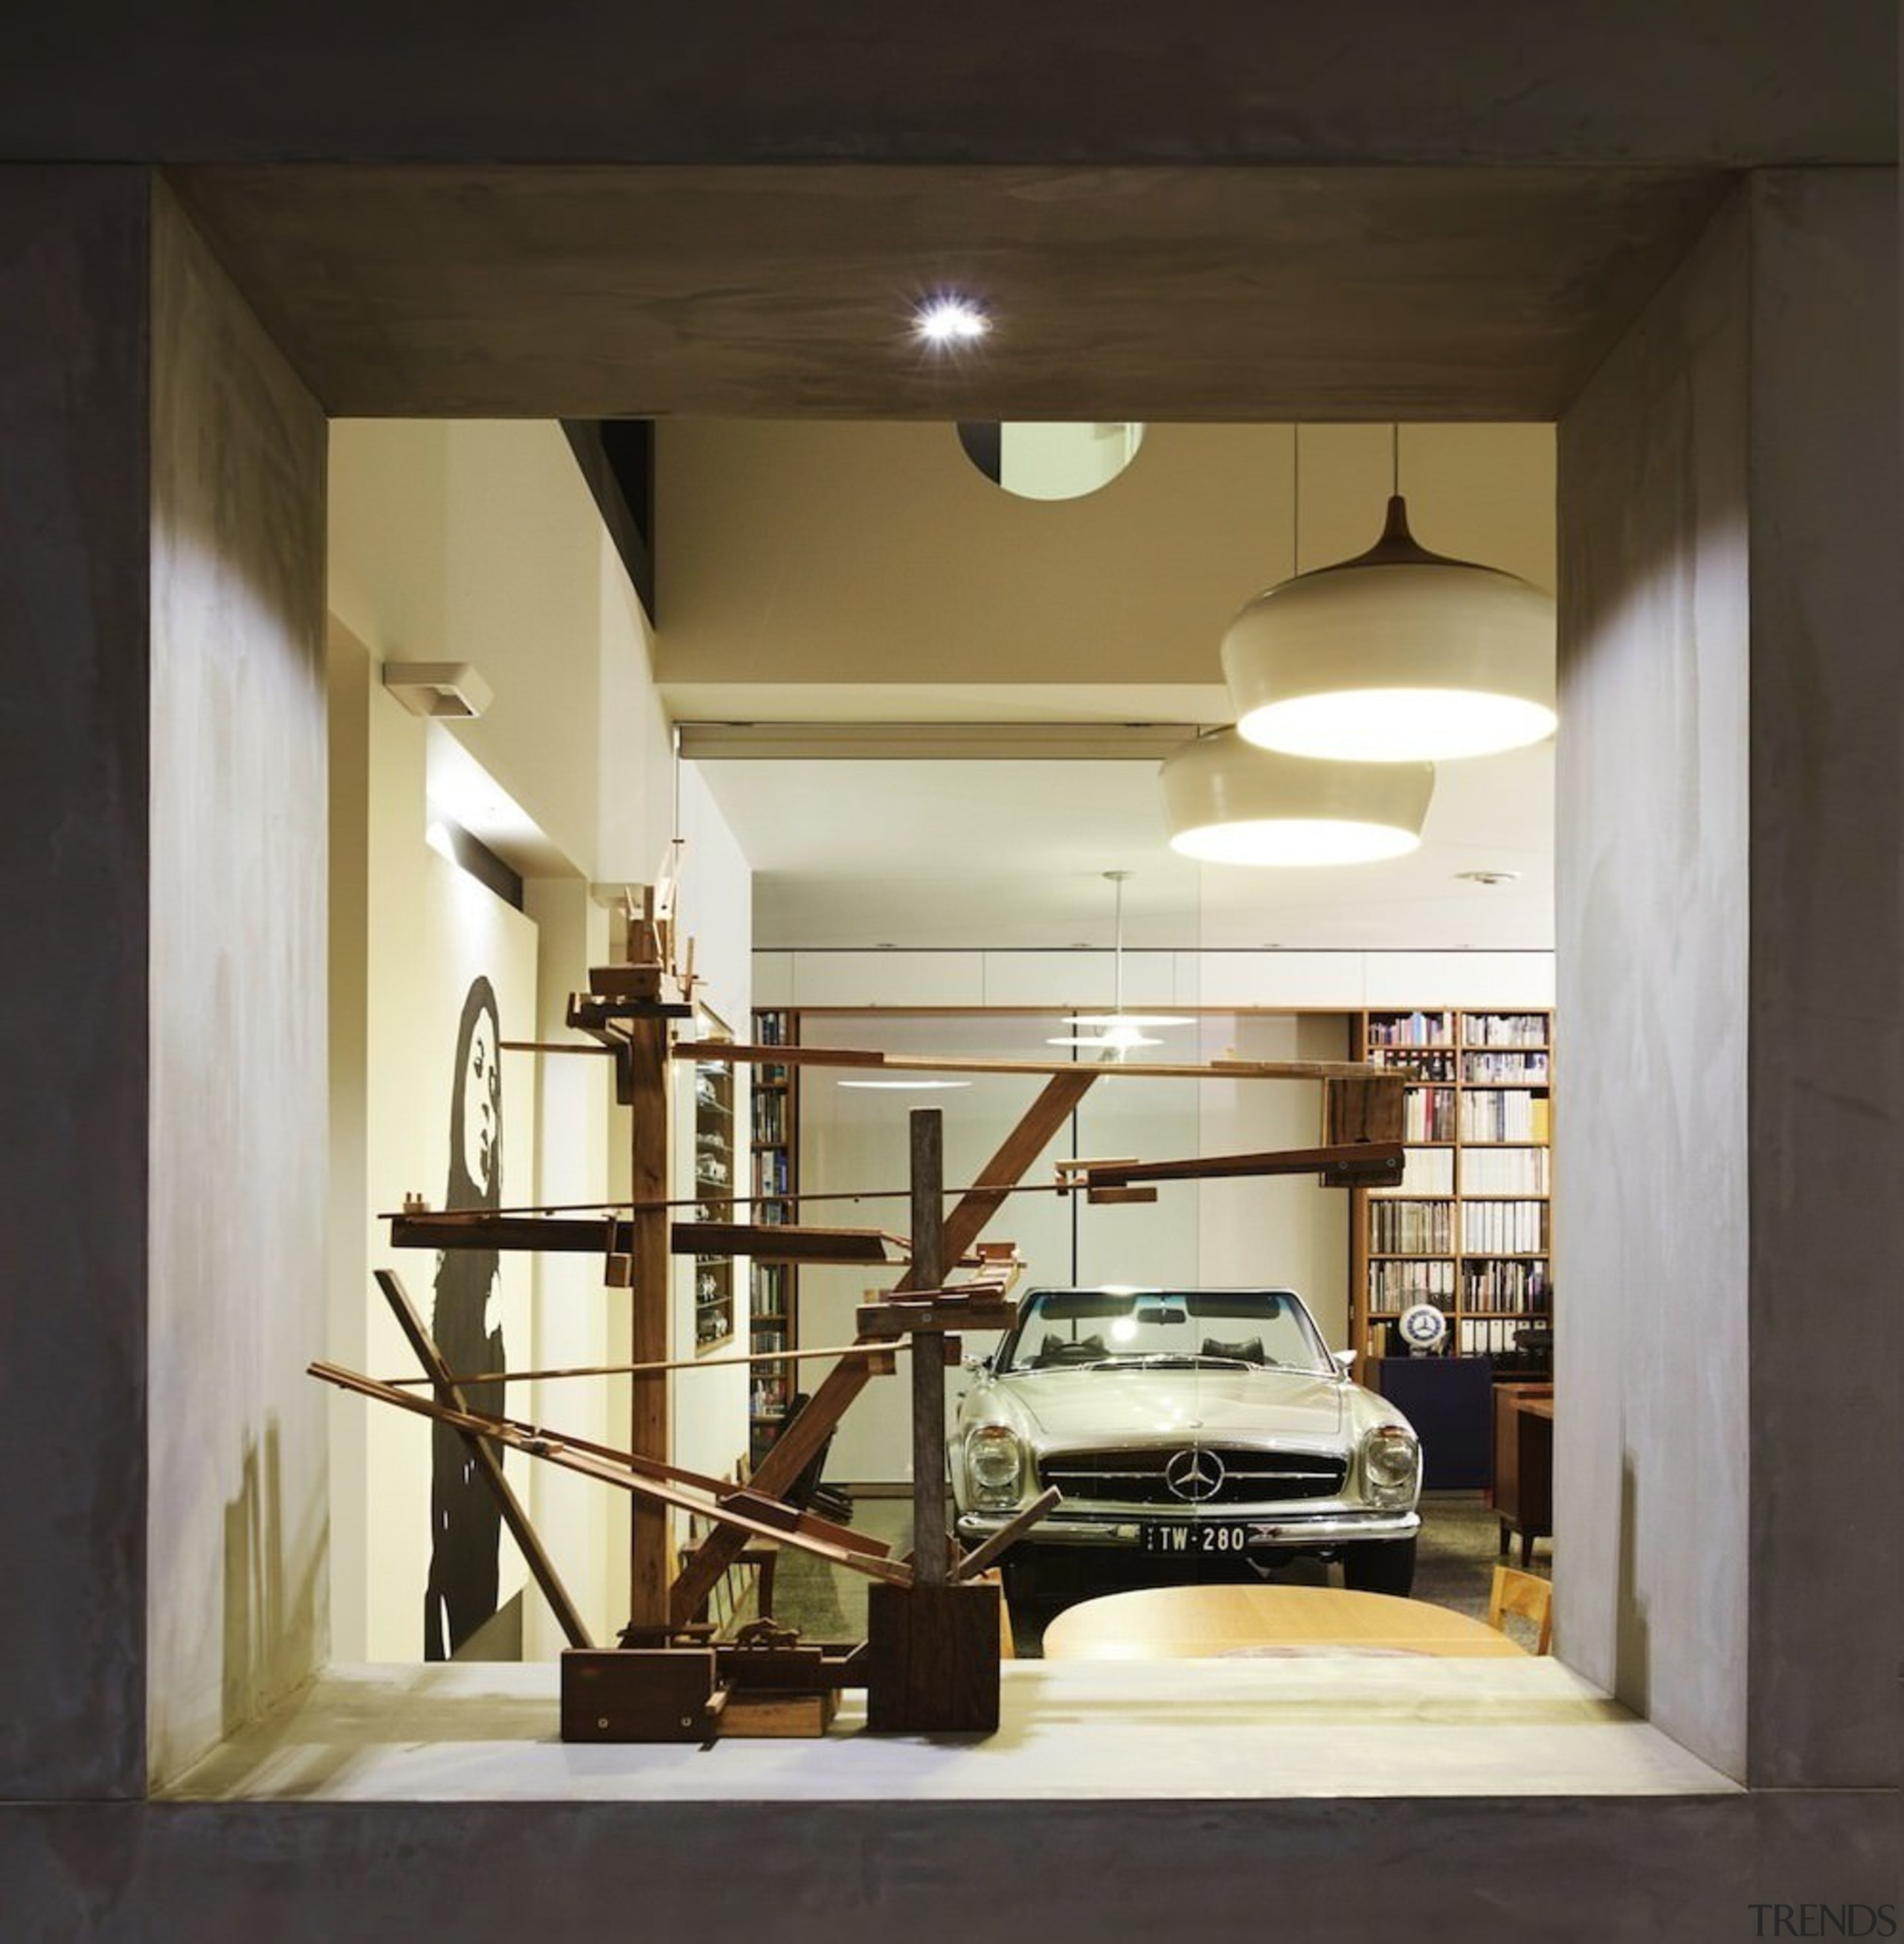 This garage/library/sculpture room is the ultimate place to ceiling, furniture, interior design, black